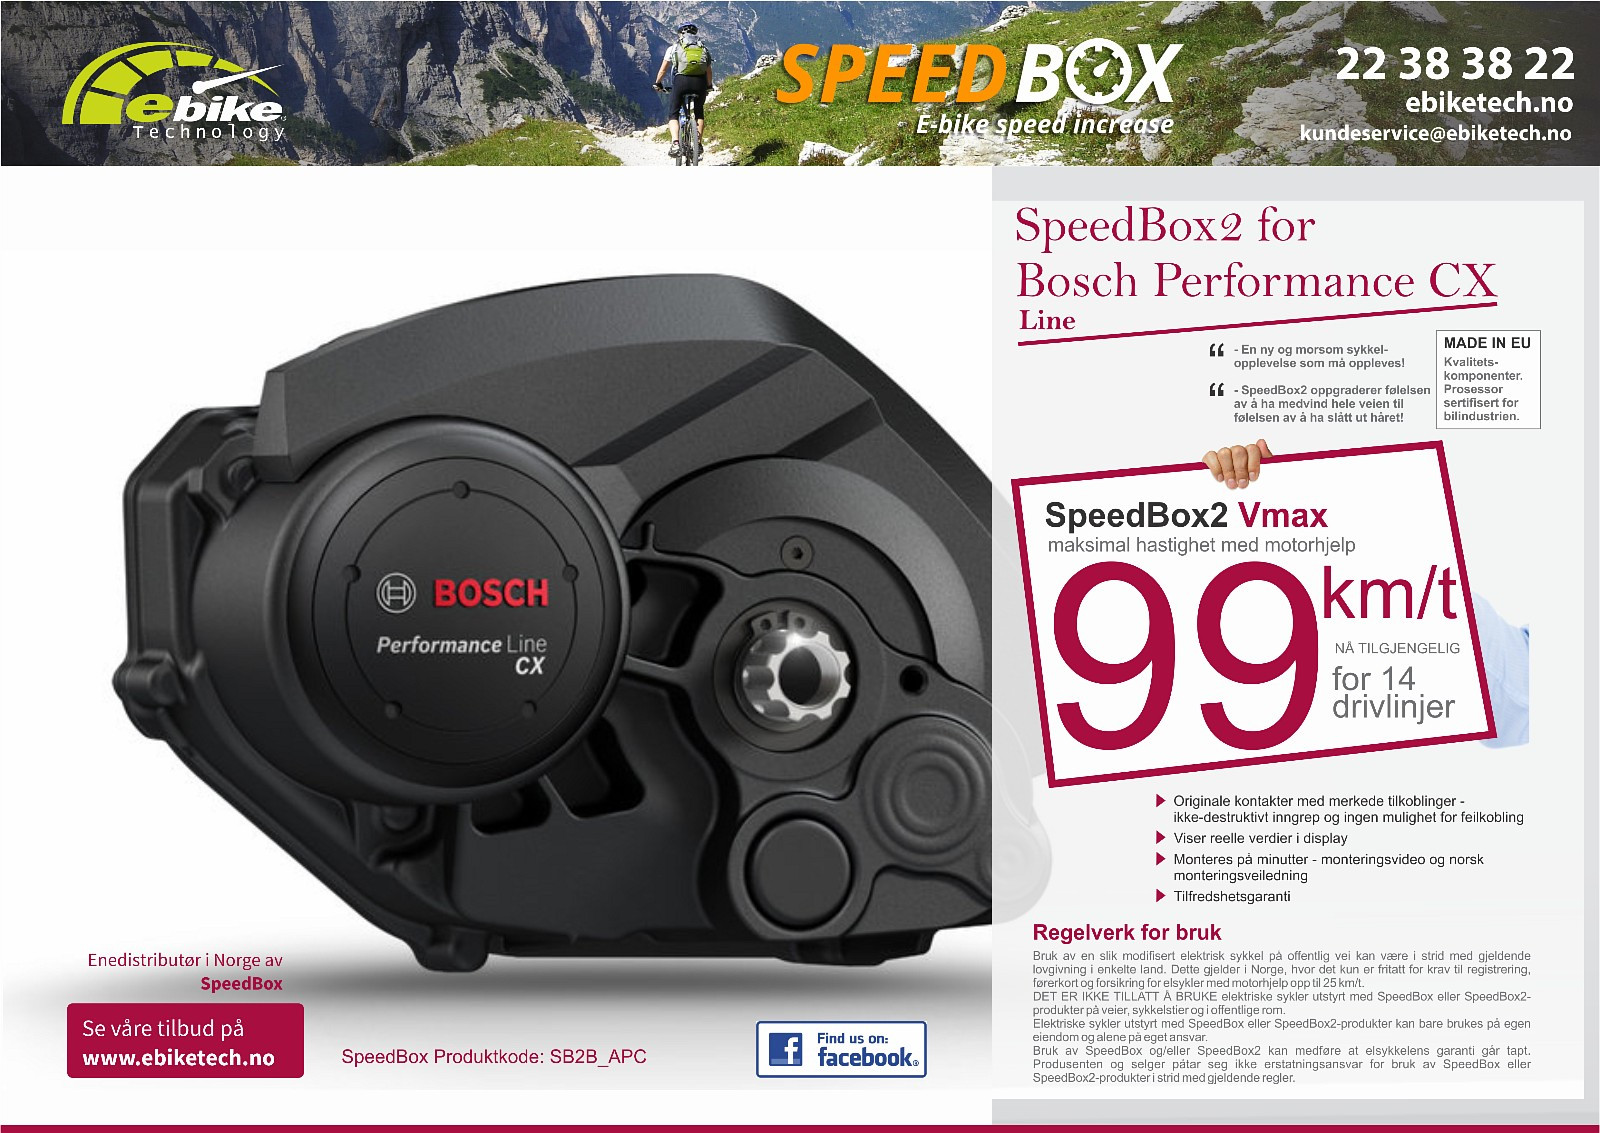 speedbox2 el sykkel tuning for bosch performance cx line. Black Bedroom Furniture Sets. Home Design Ideas